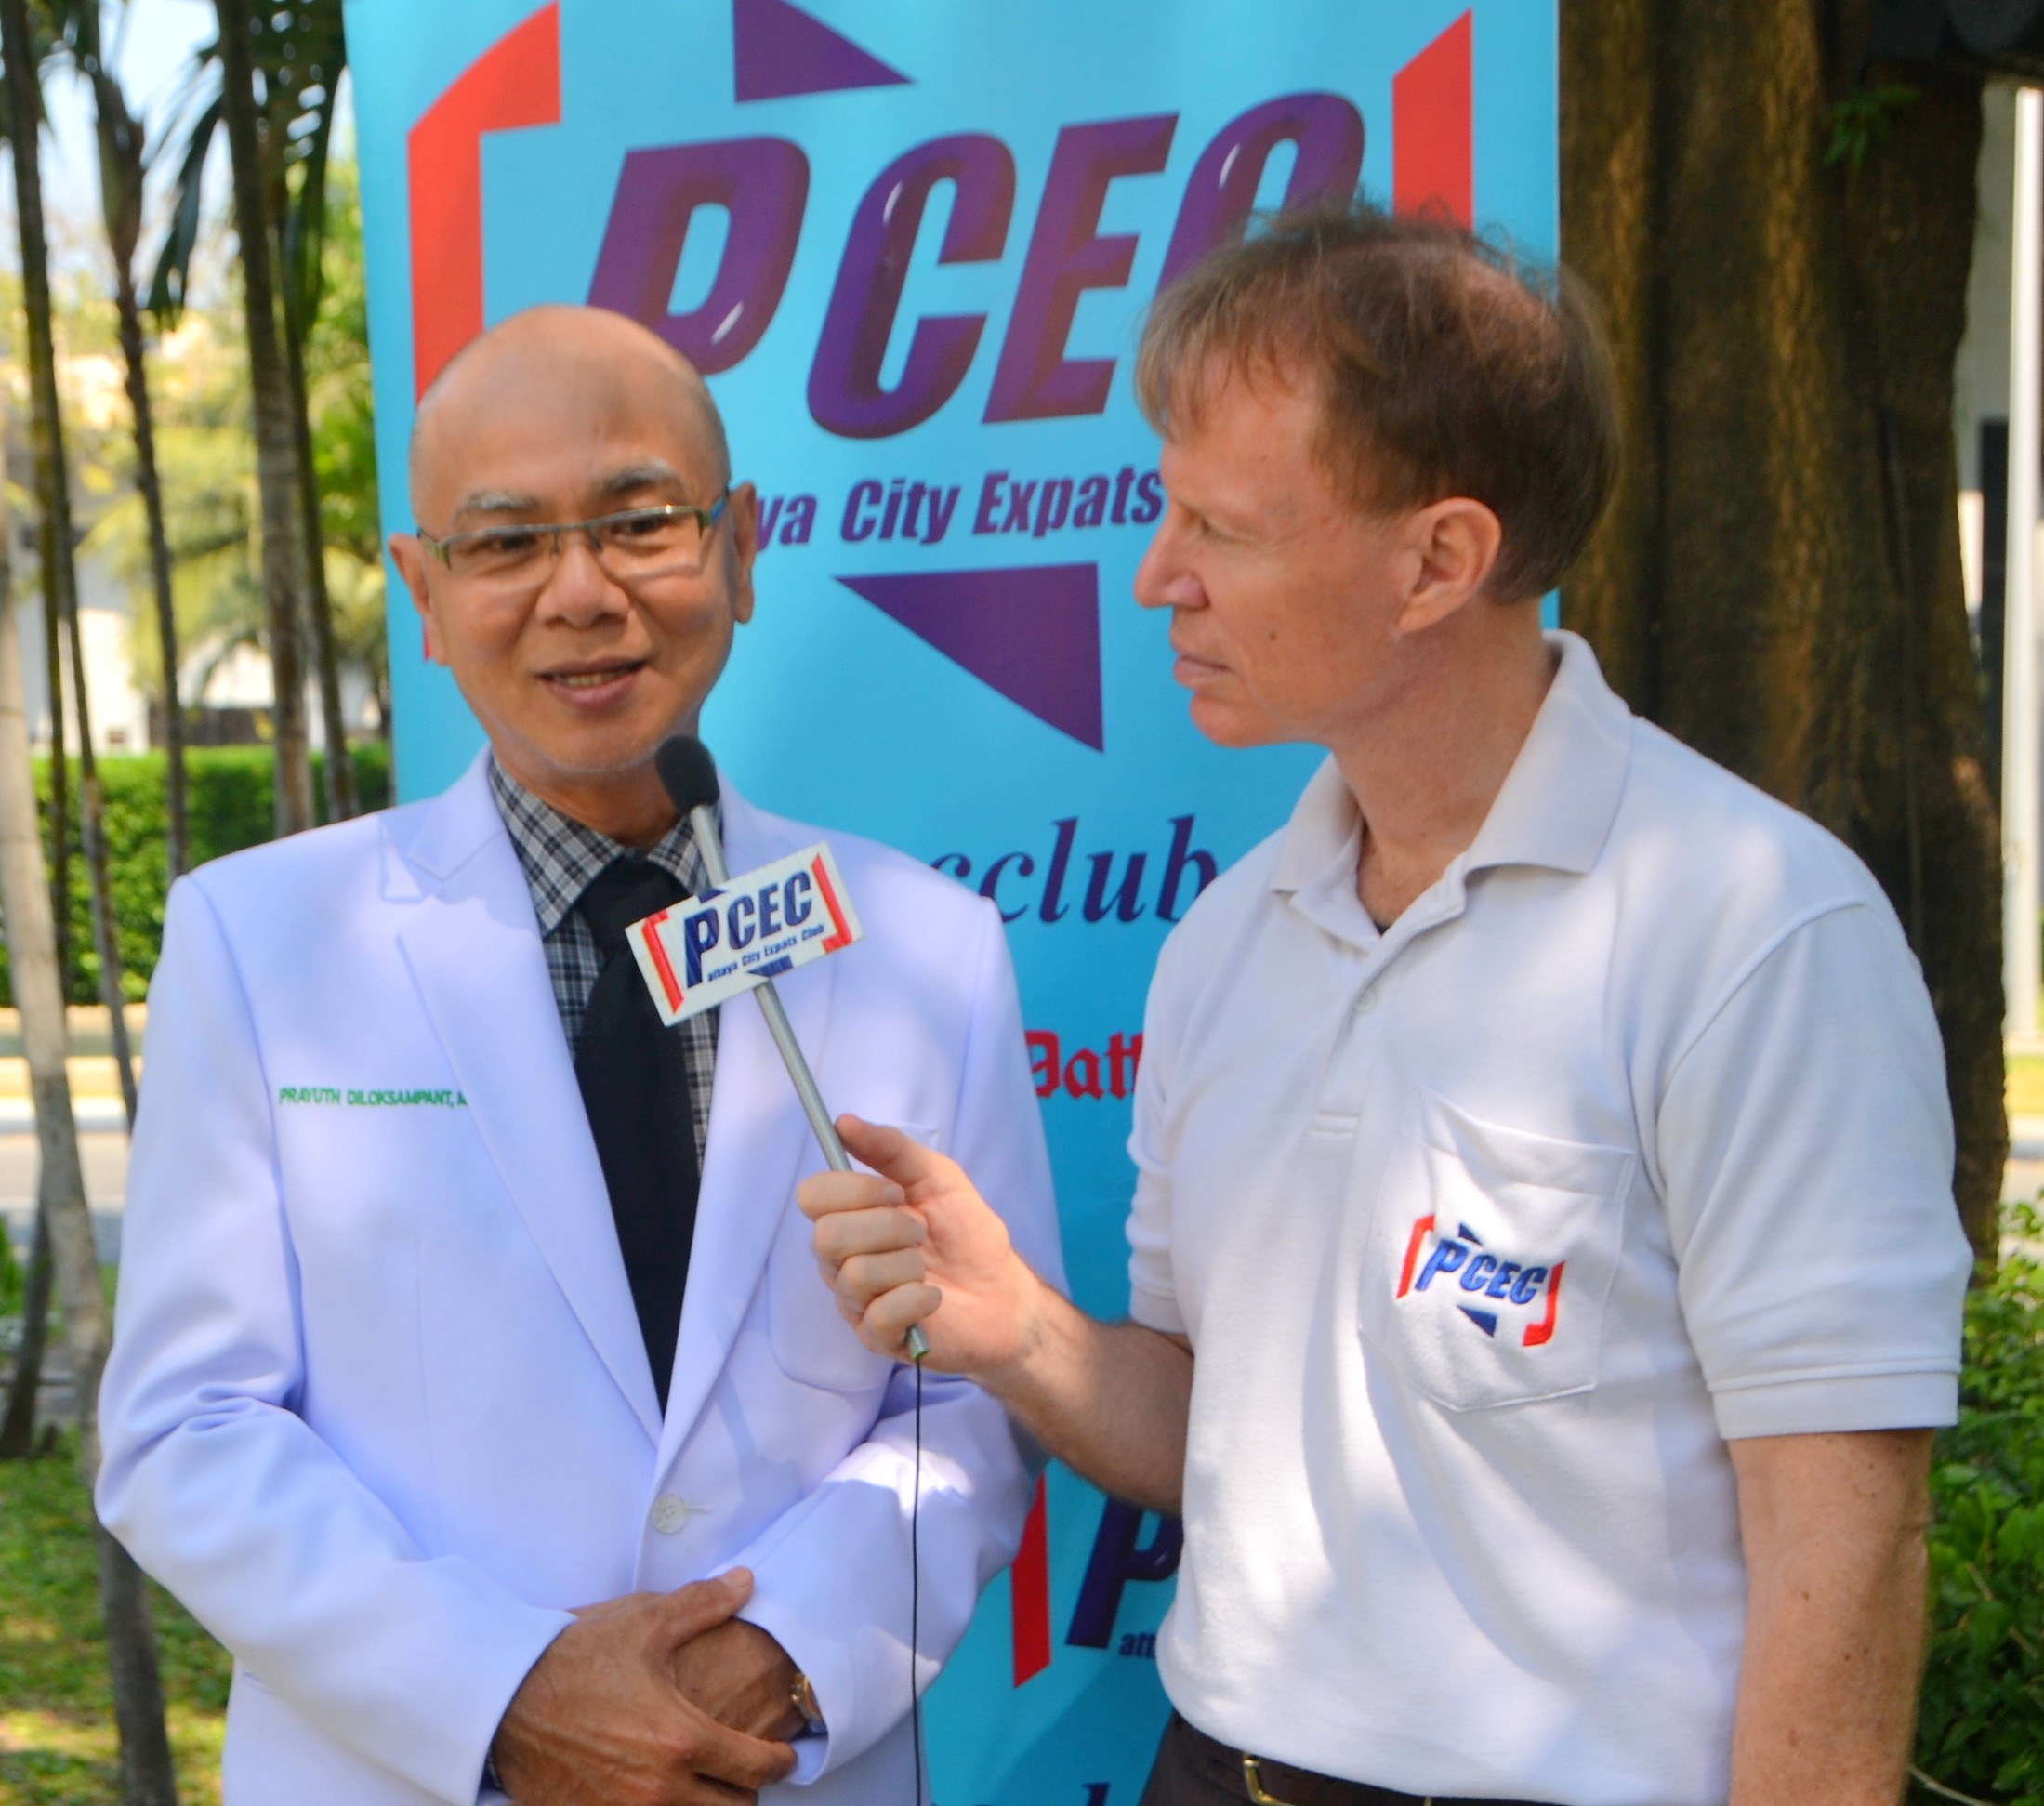 Member Ren Lexander interviews Rayuth Diloksampant, MD, about his just completed presentation to the PCEC. To view the video, visit https://www.youtube.com/watch?v=lOwUH09DbKE&t=4s.